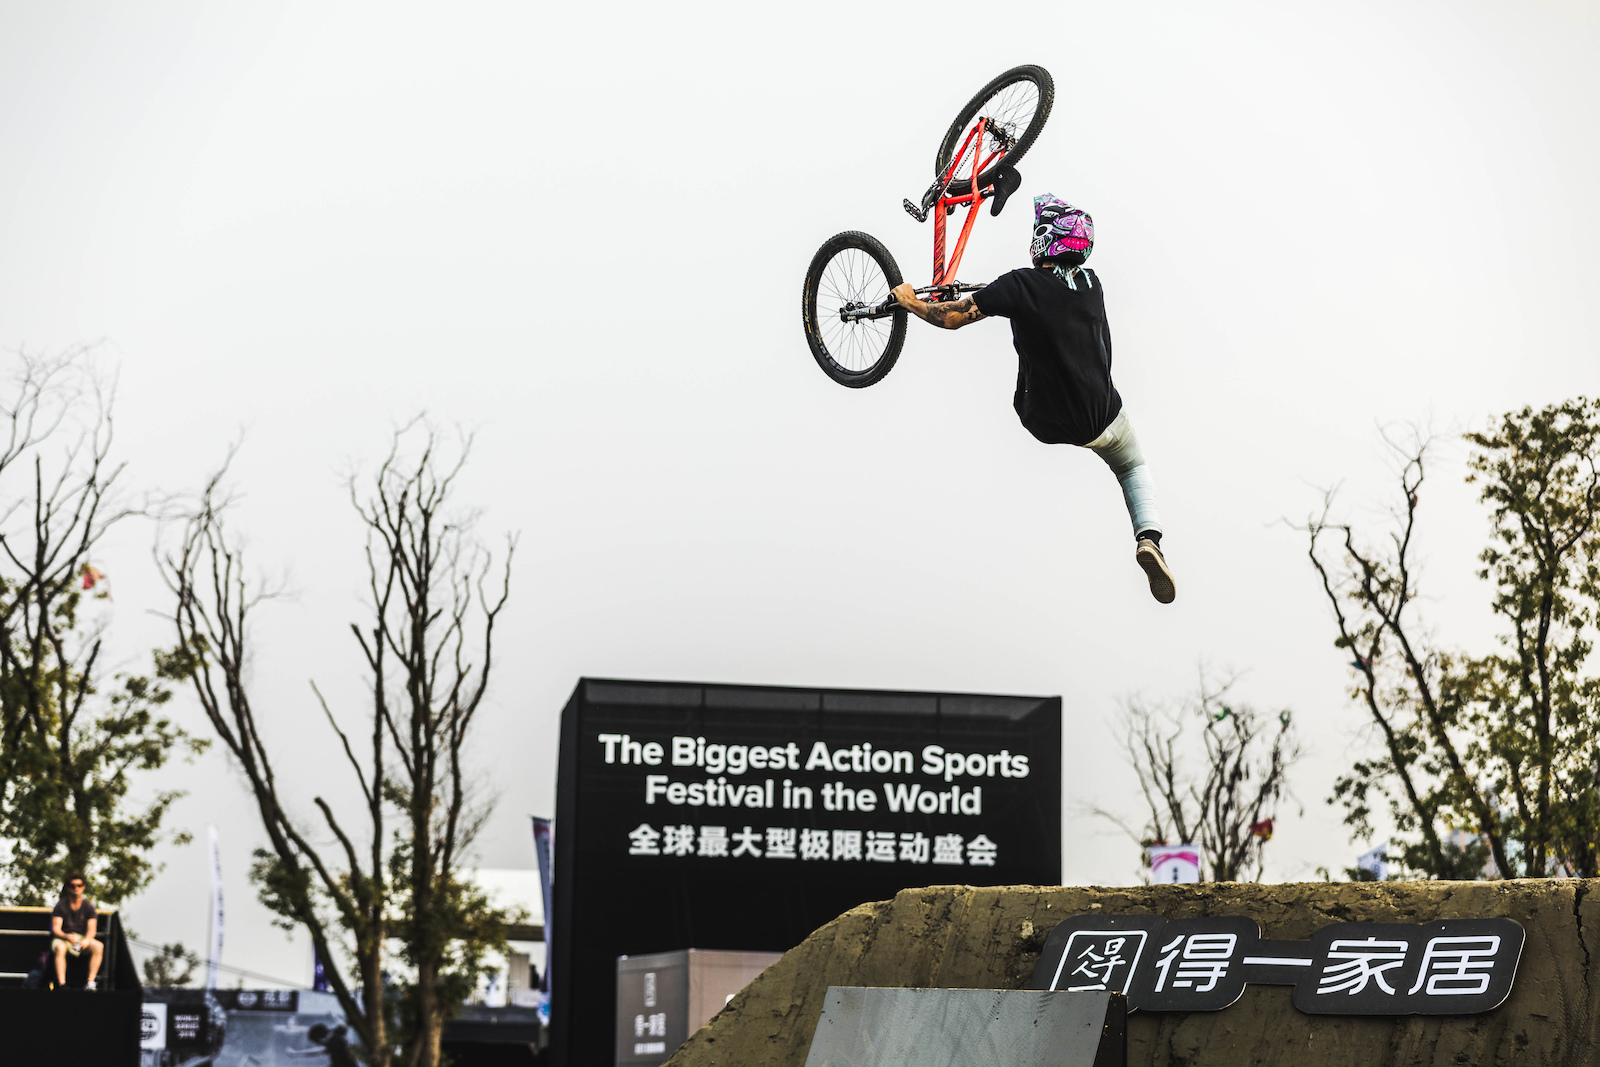 Backflip Double Whip from Chengdu s MVP Tomas Lemoine.